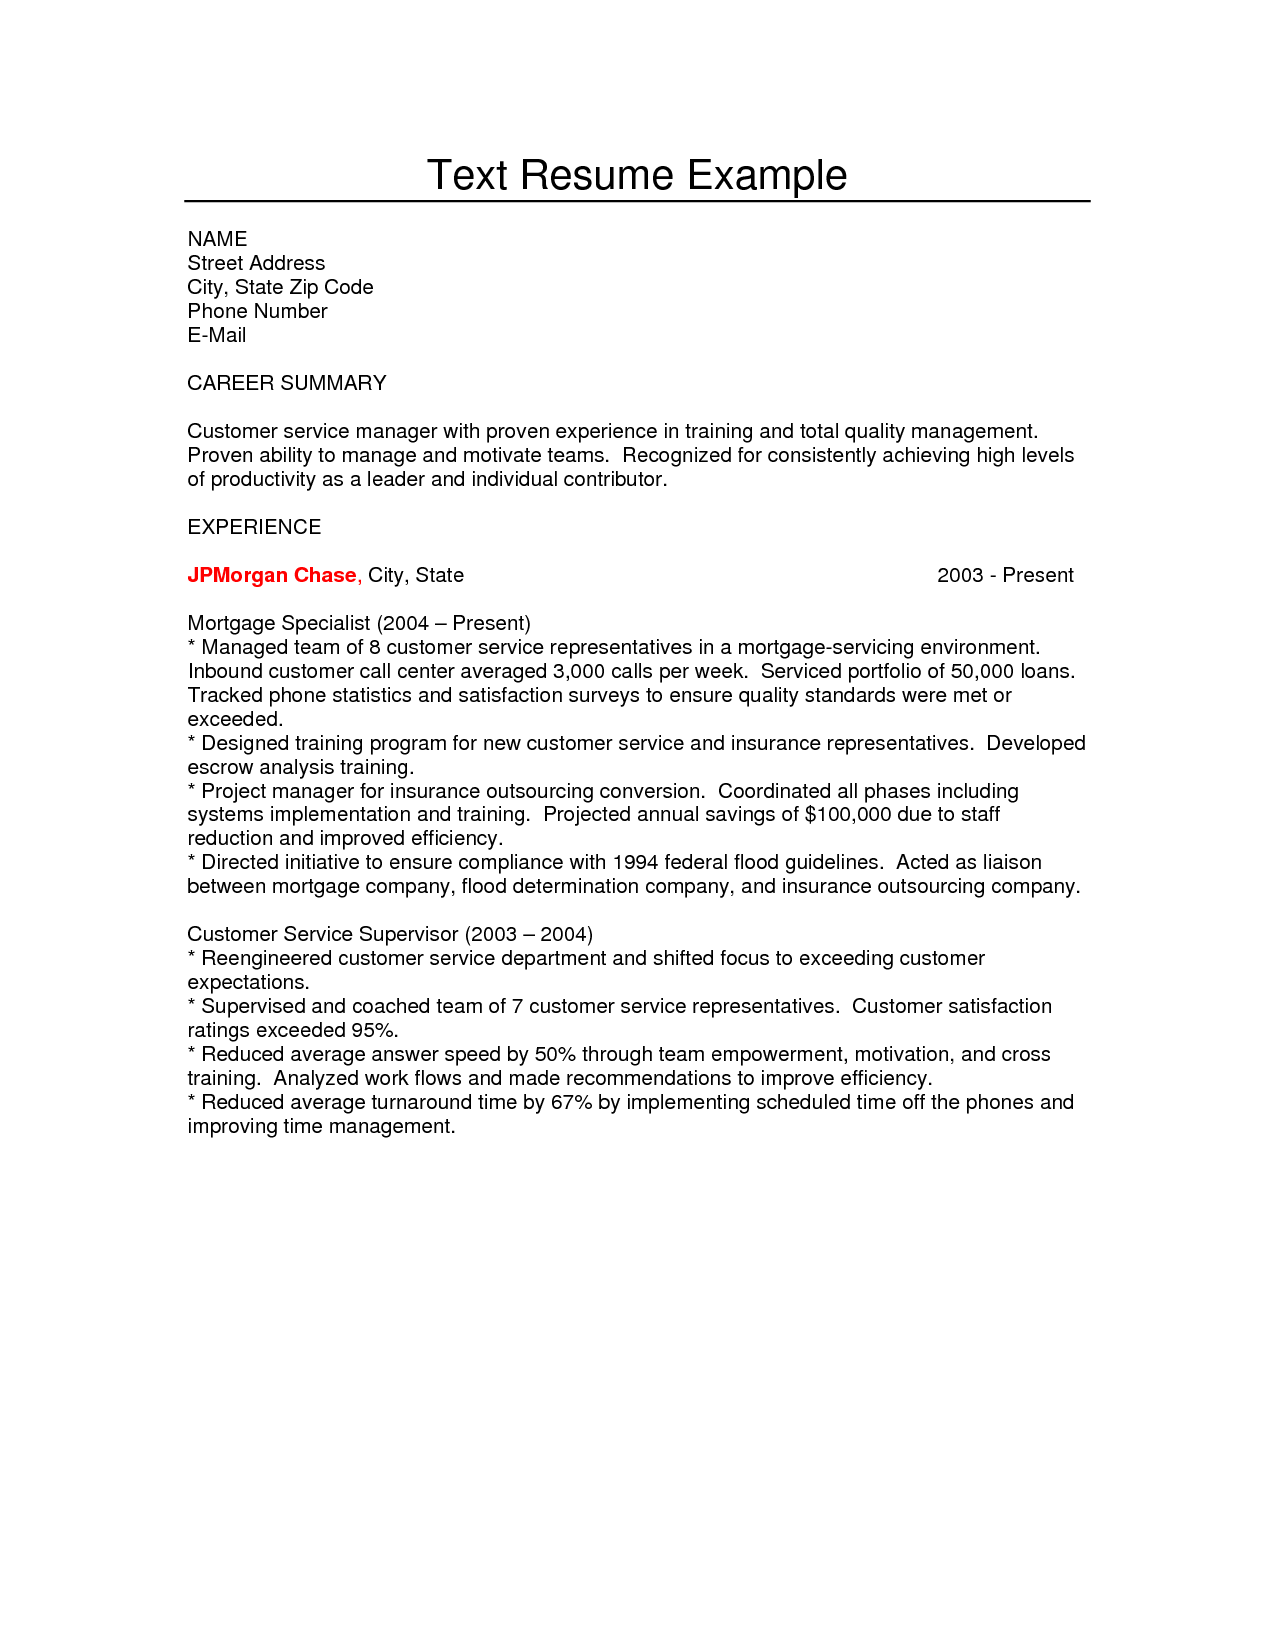 Jp Morgan Cover Letter Ideas 7 How To Make A Plain Text Resume